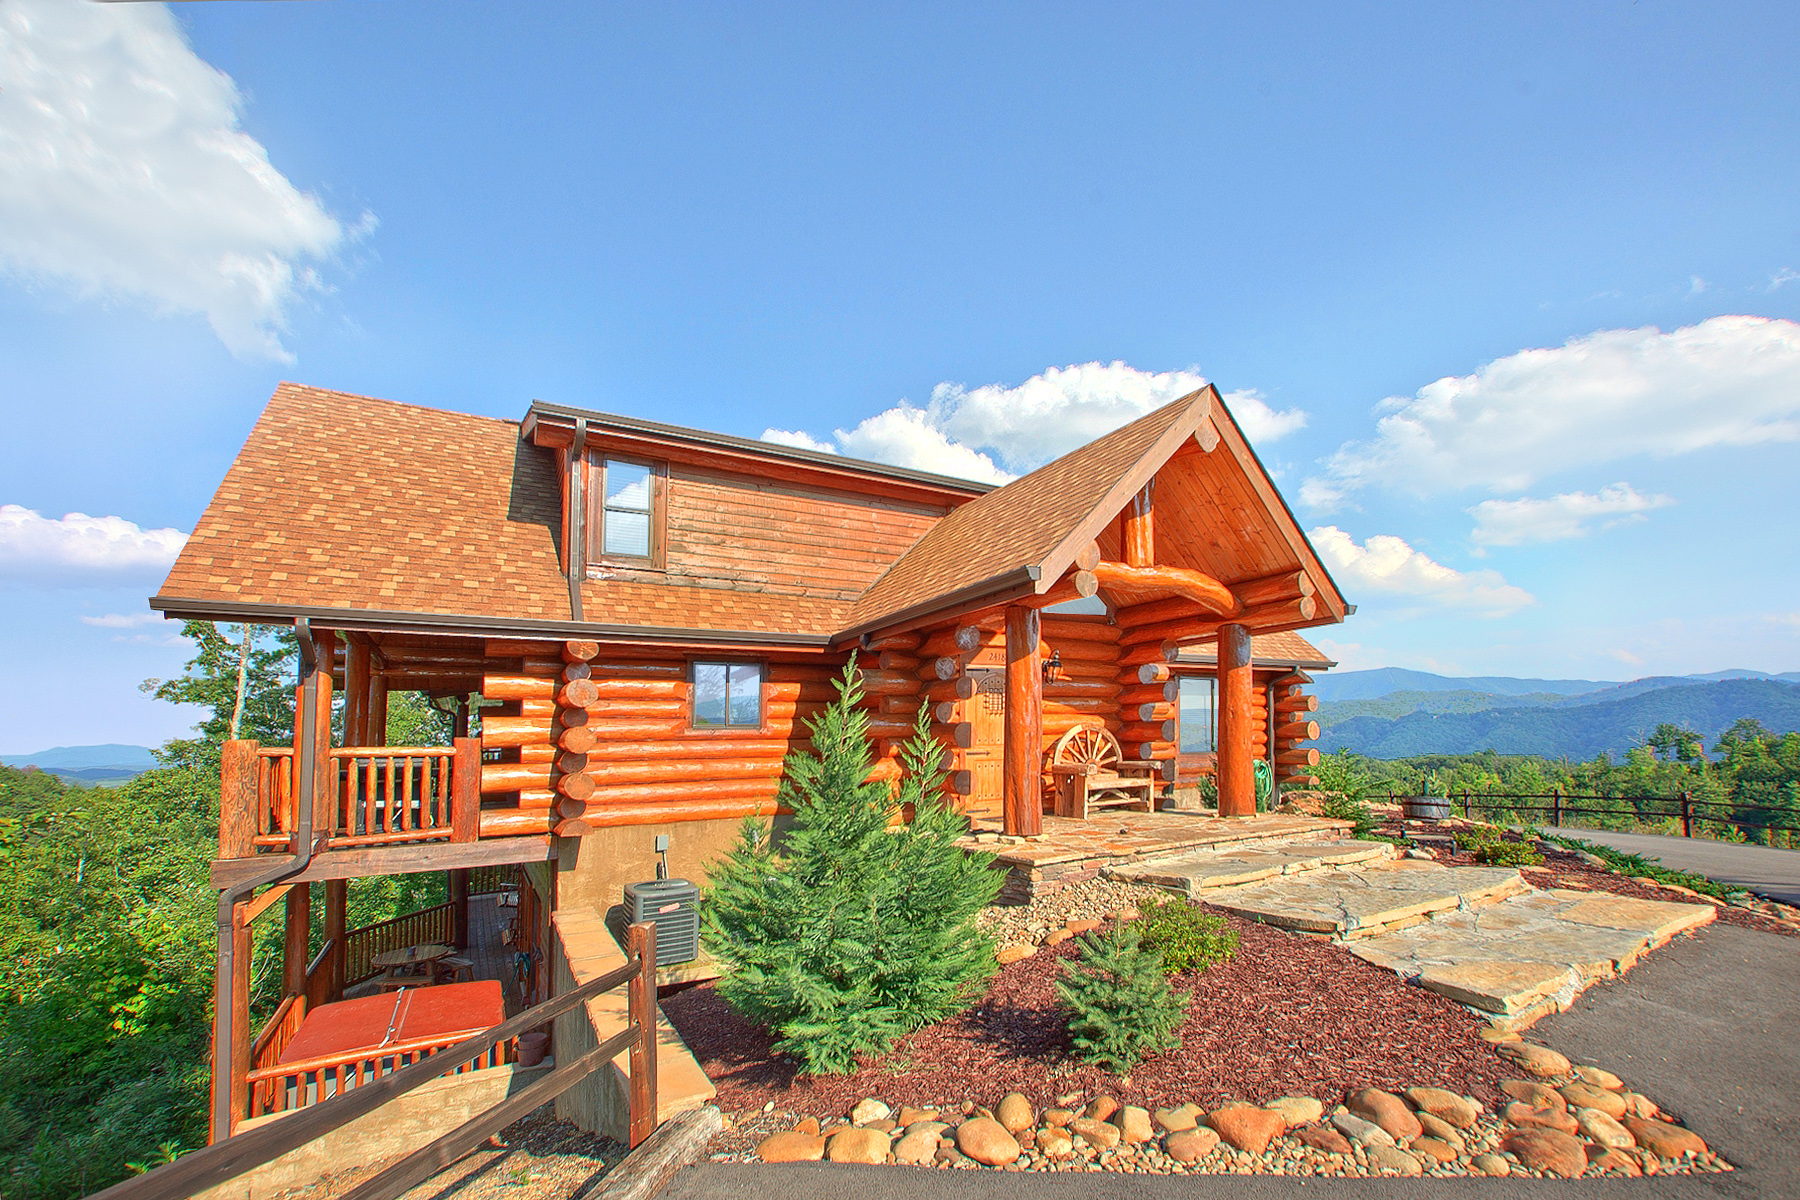 American Patriot Getaways in Pigeon Forge, TN - Tennessee Vacation